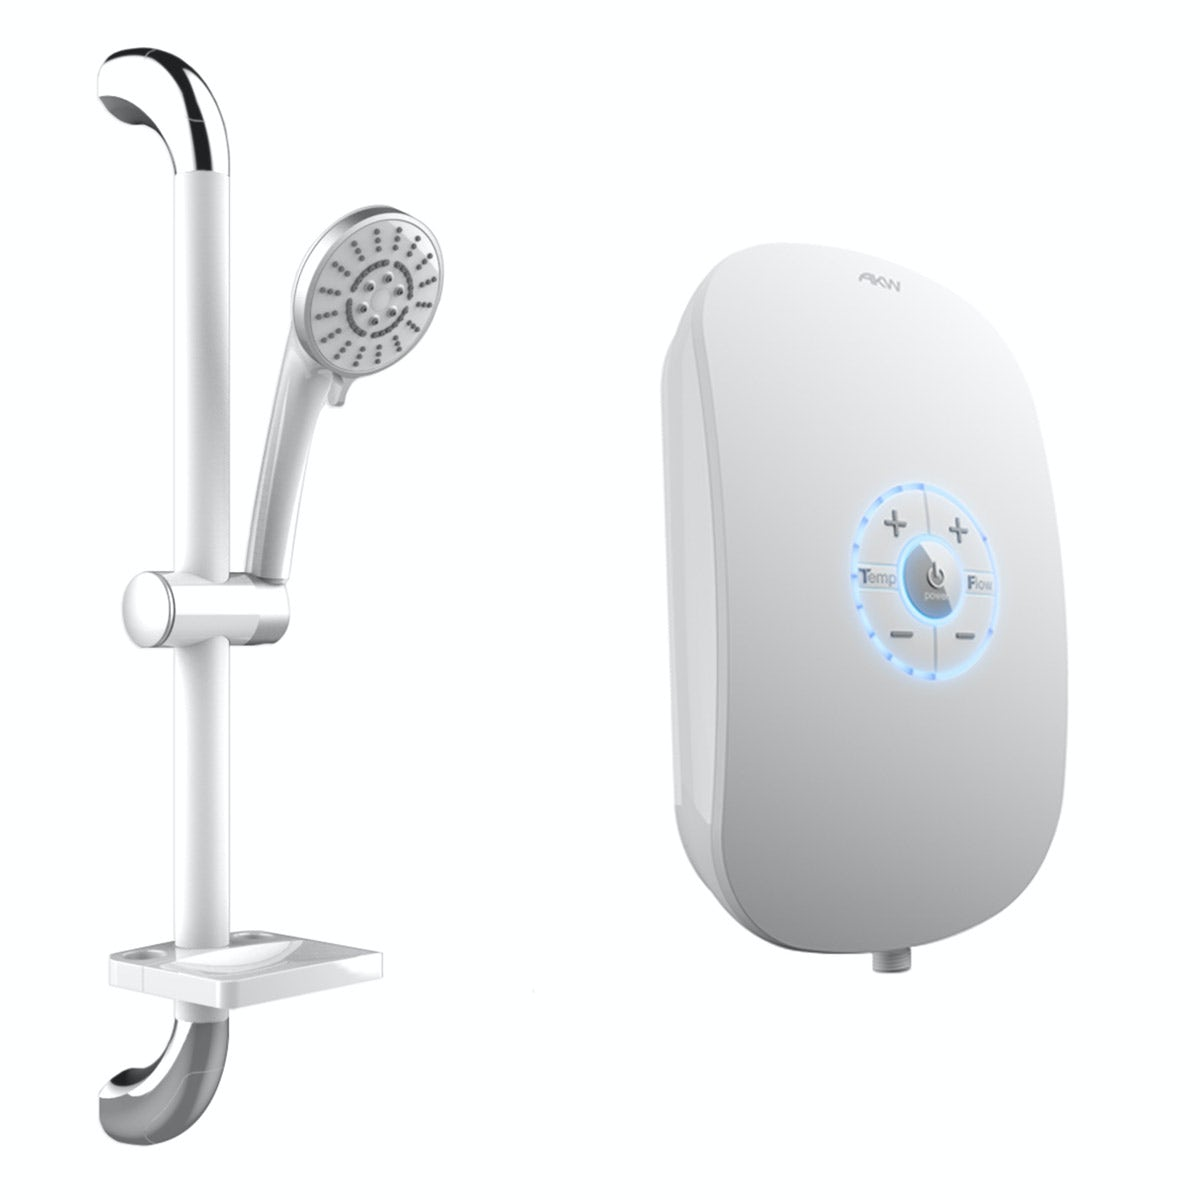 AKW iCare 8.5kw electric shower silver